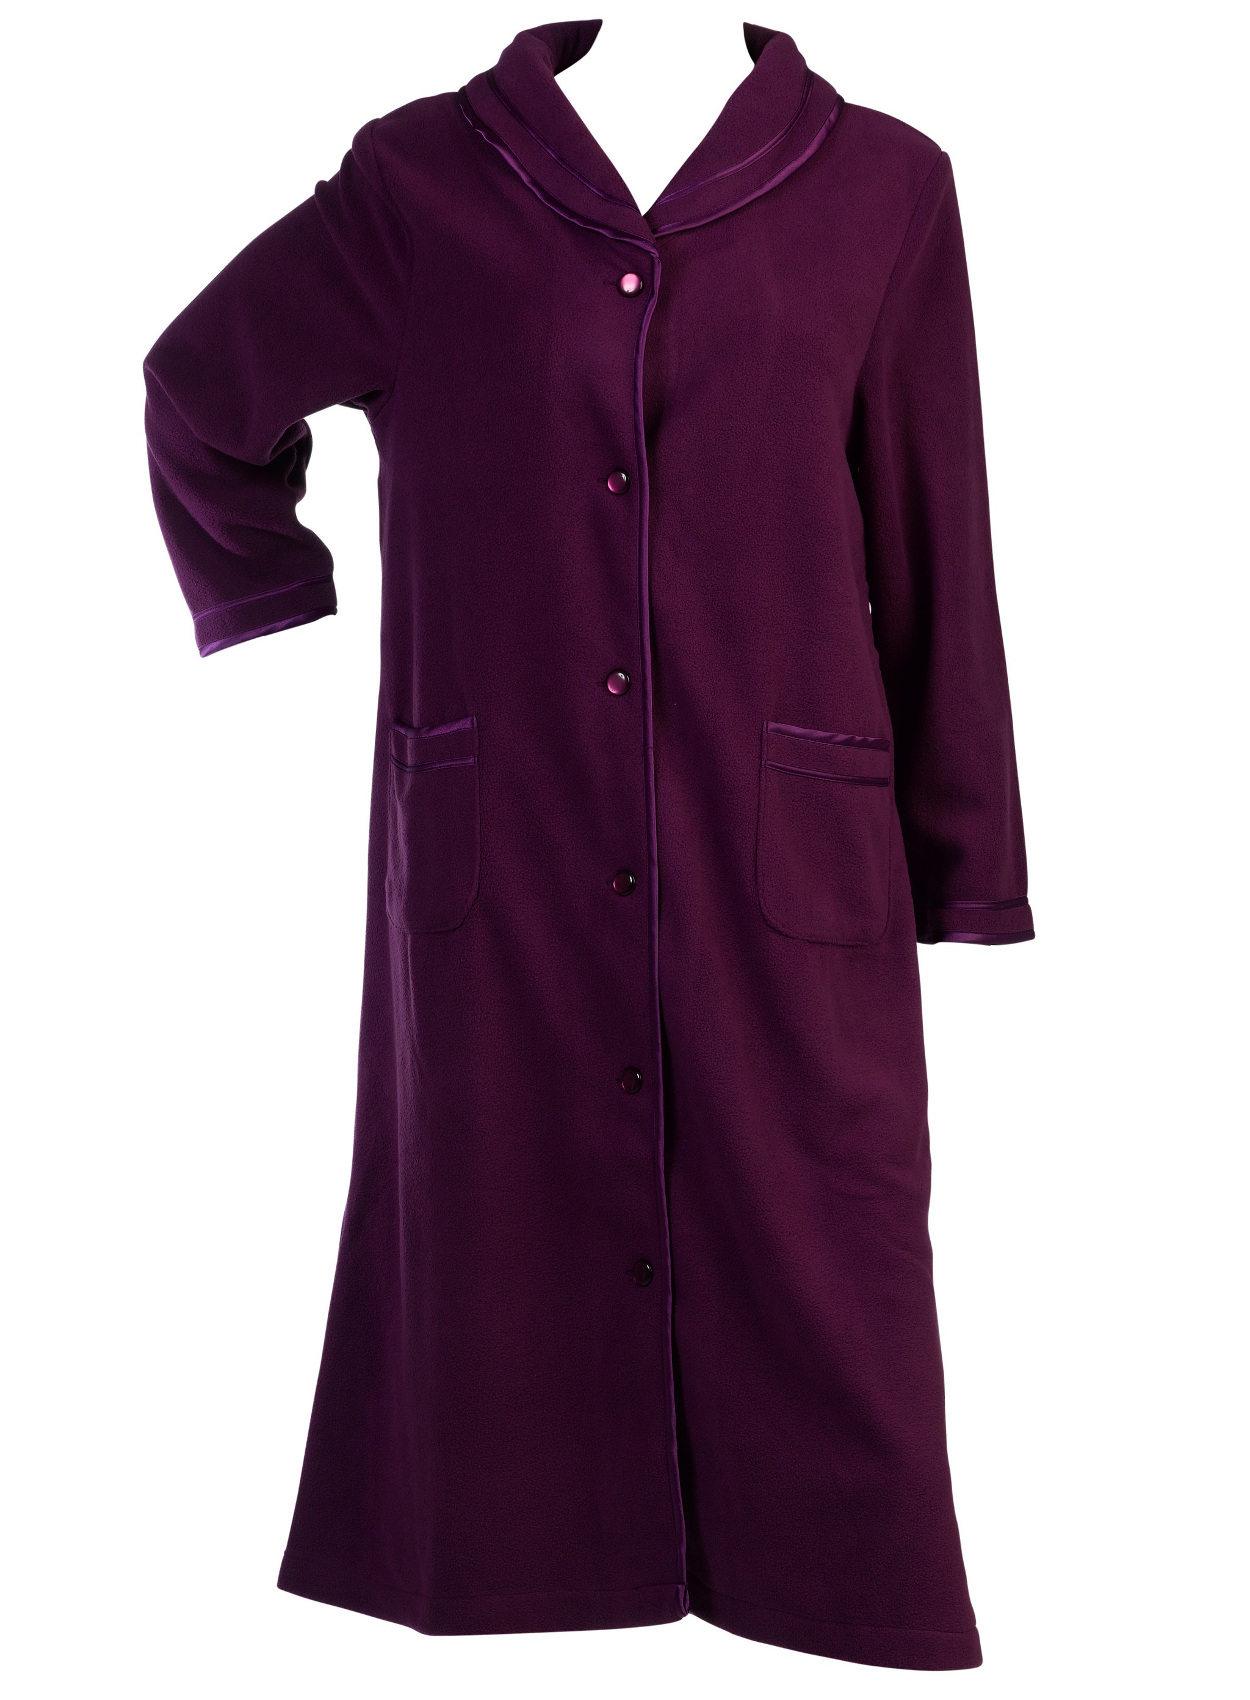 slenderella womens bed jacket or dressing gown anti pill. Black Bedroom Furniture Sets. Home Design Ideas